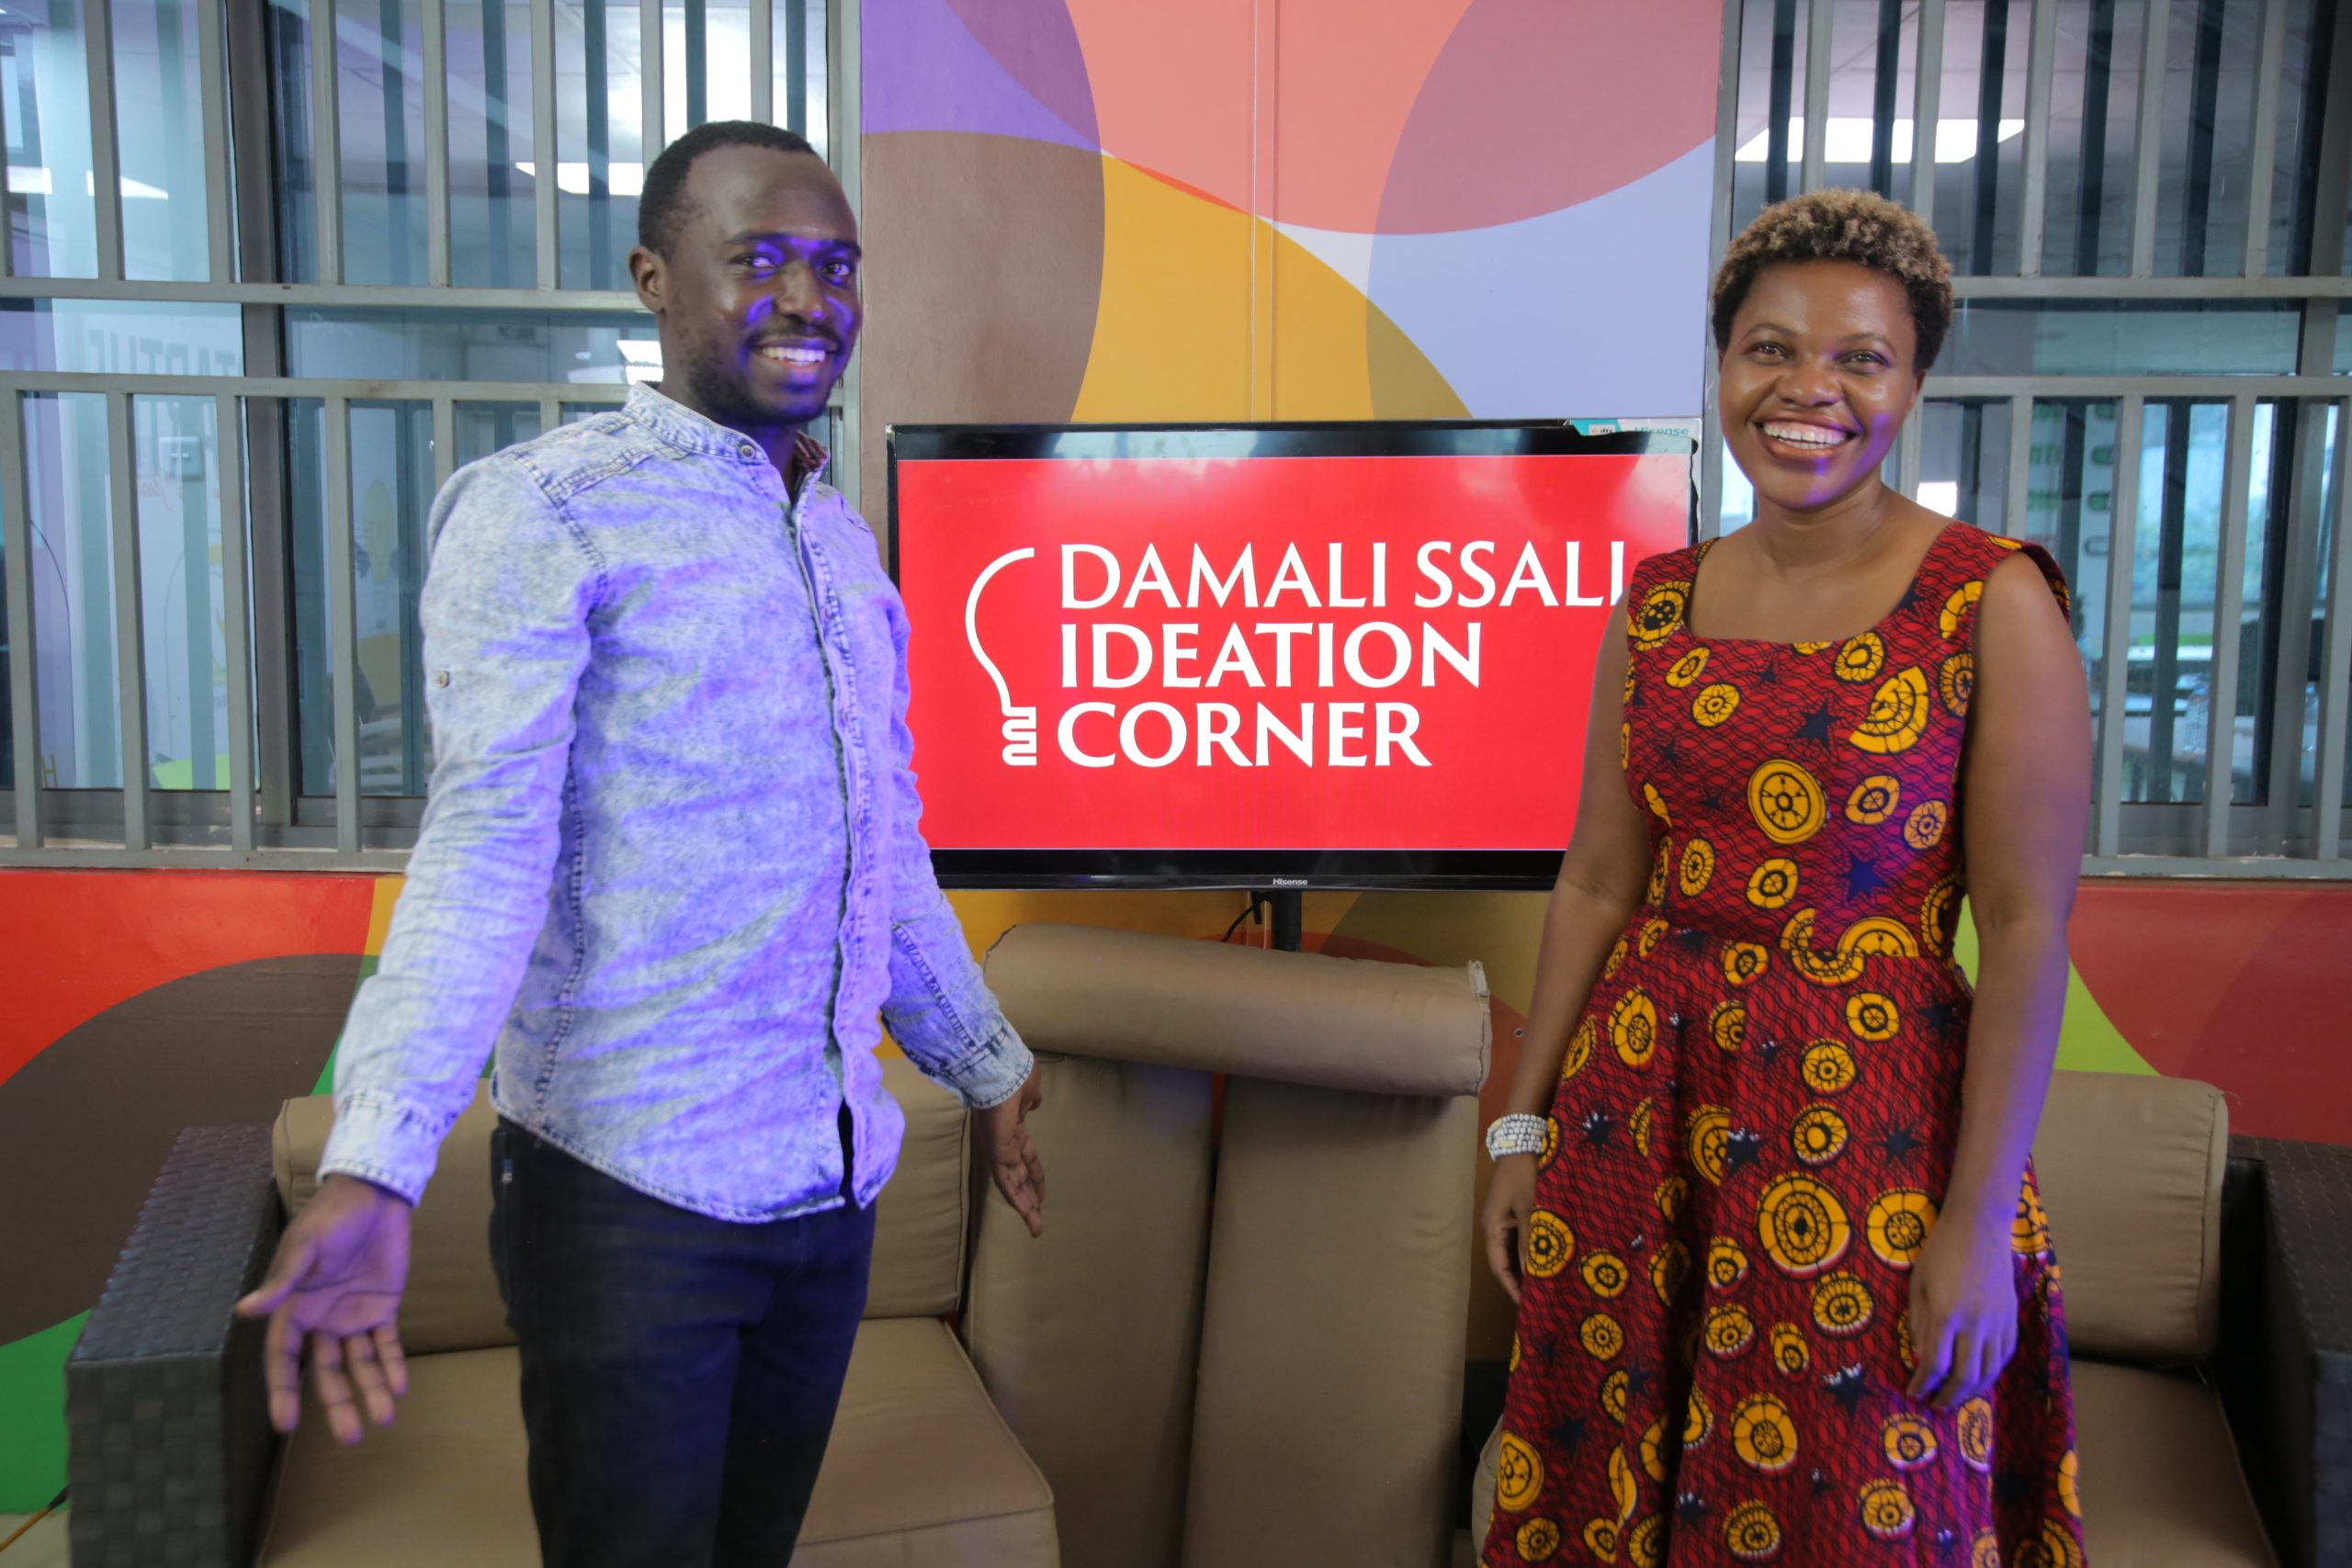 IDEATION CORNER: EPISODE 11: Kawooya Joined the Lord Mayoral Race to Create  a Smart Digital City - Peril Of Africa